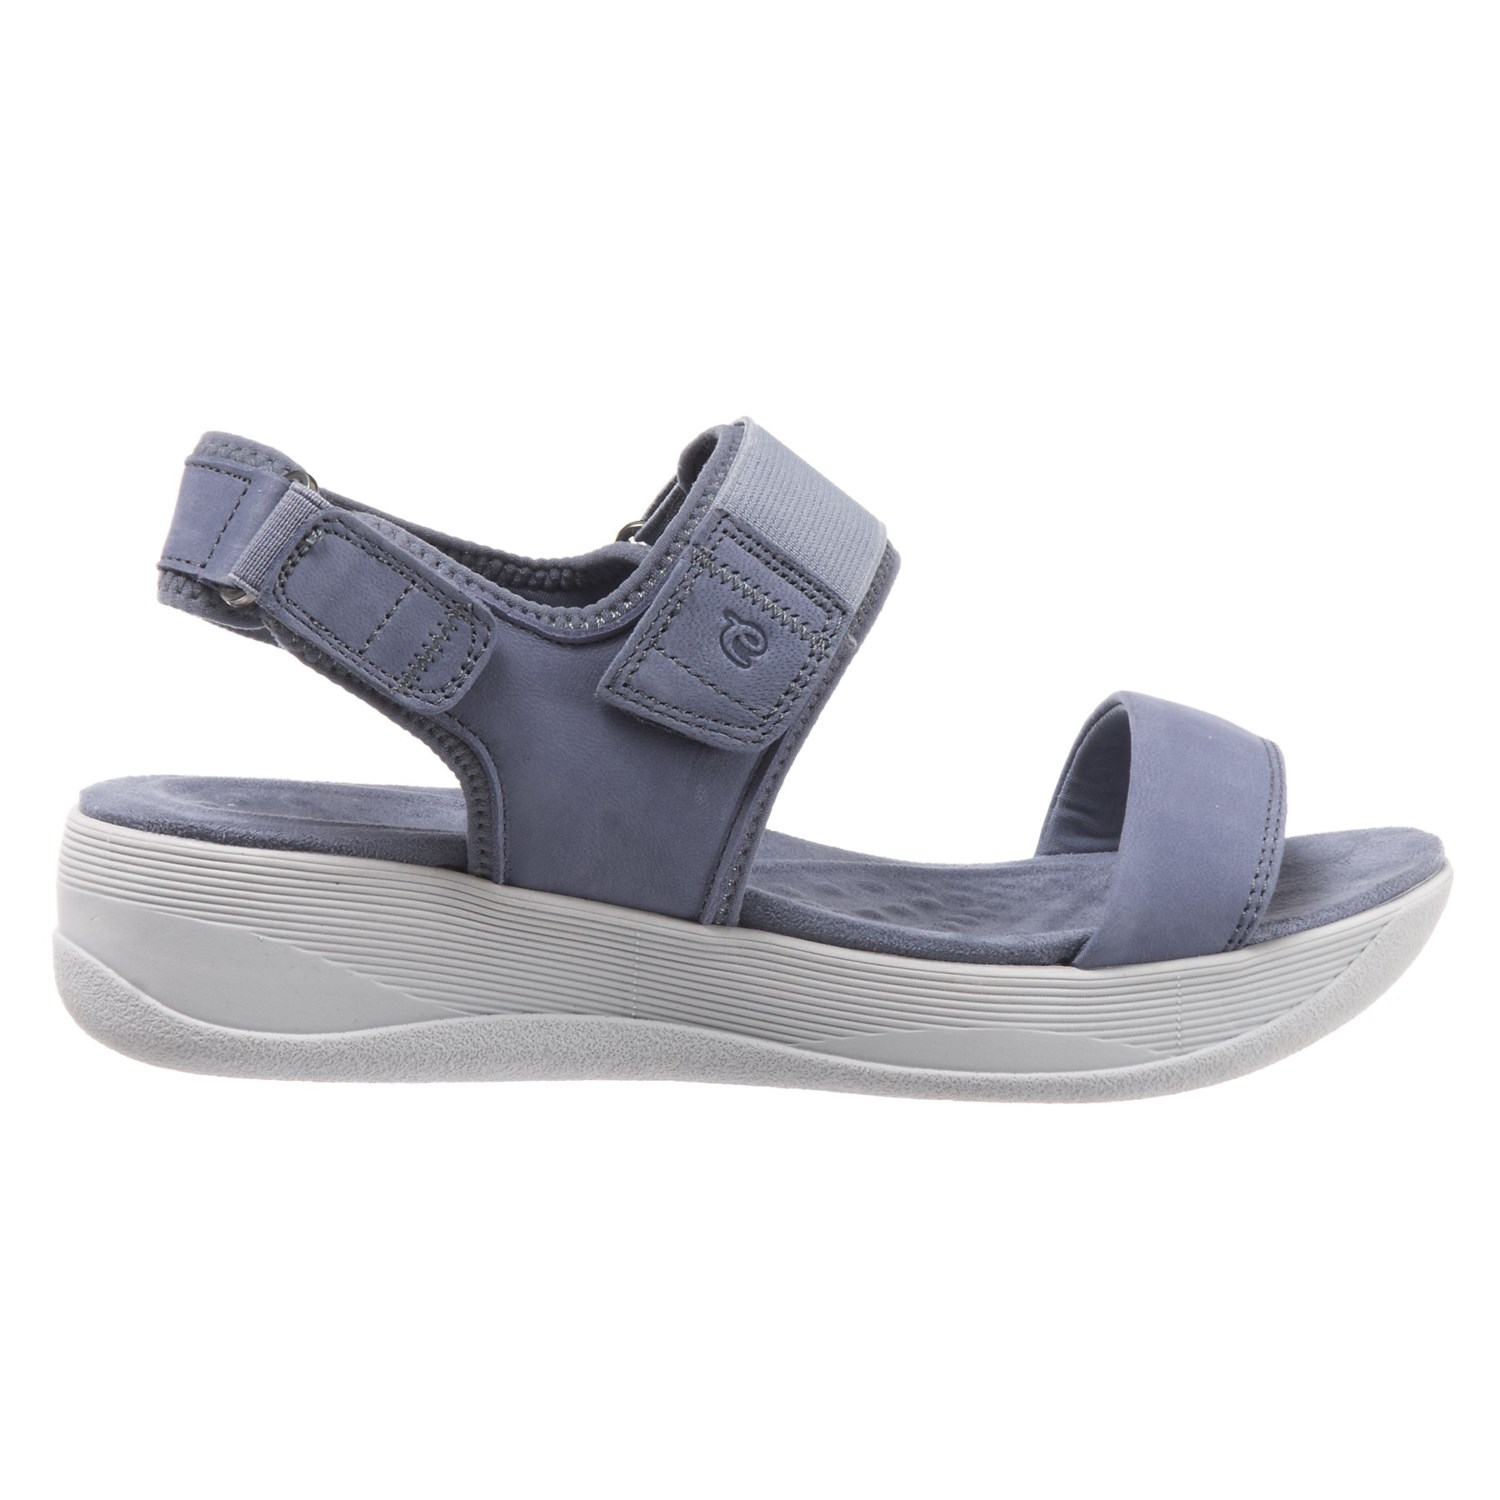 306bb8a189b Easy Spirit Jasiele9 Wedge Sandals (For Women) - Save 40%